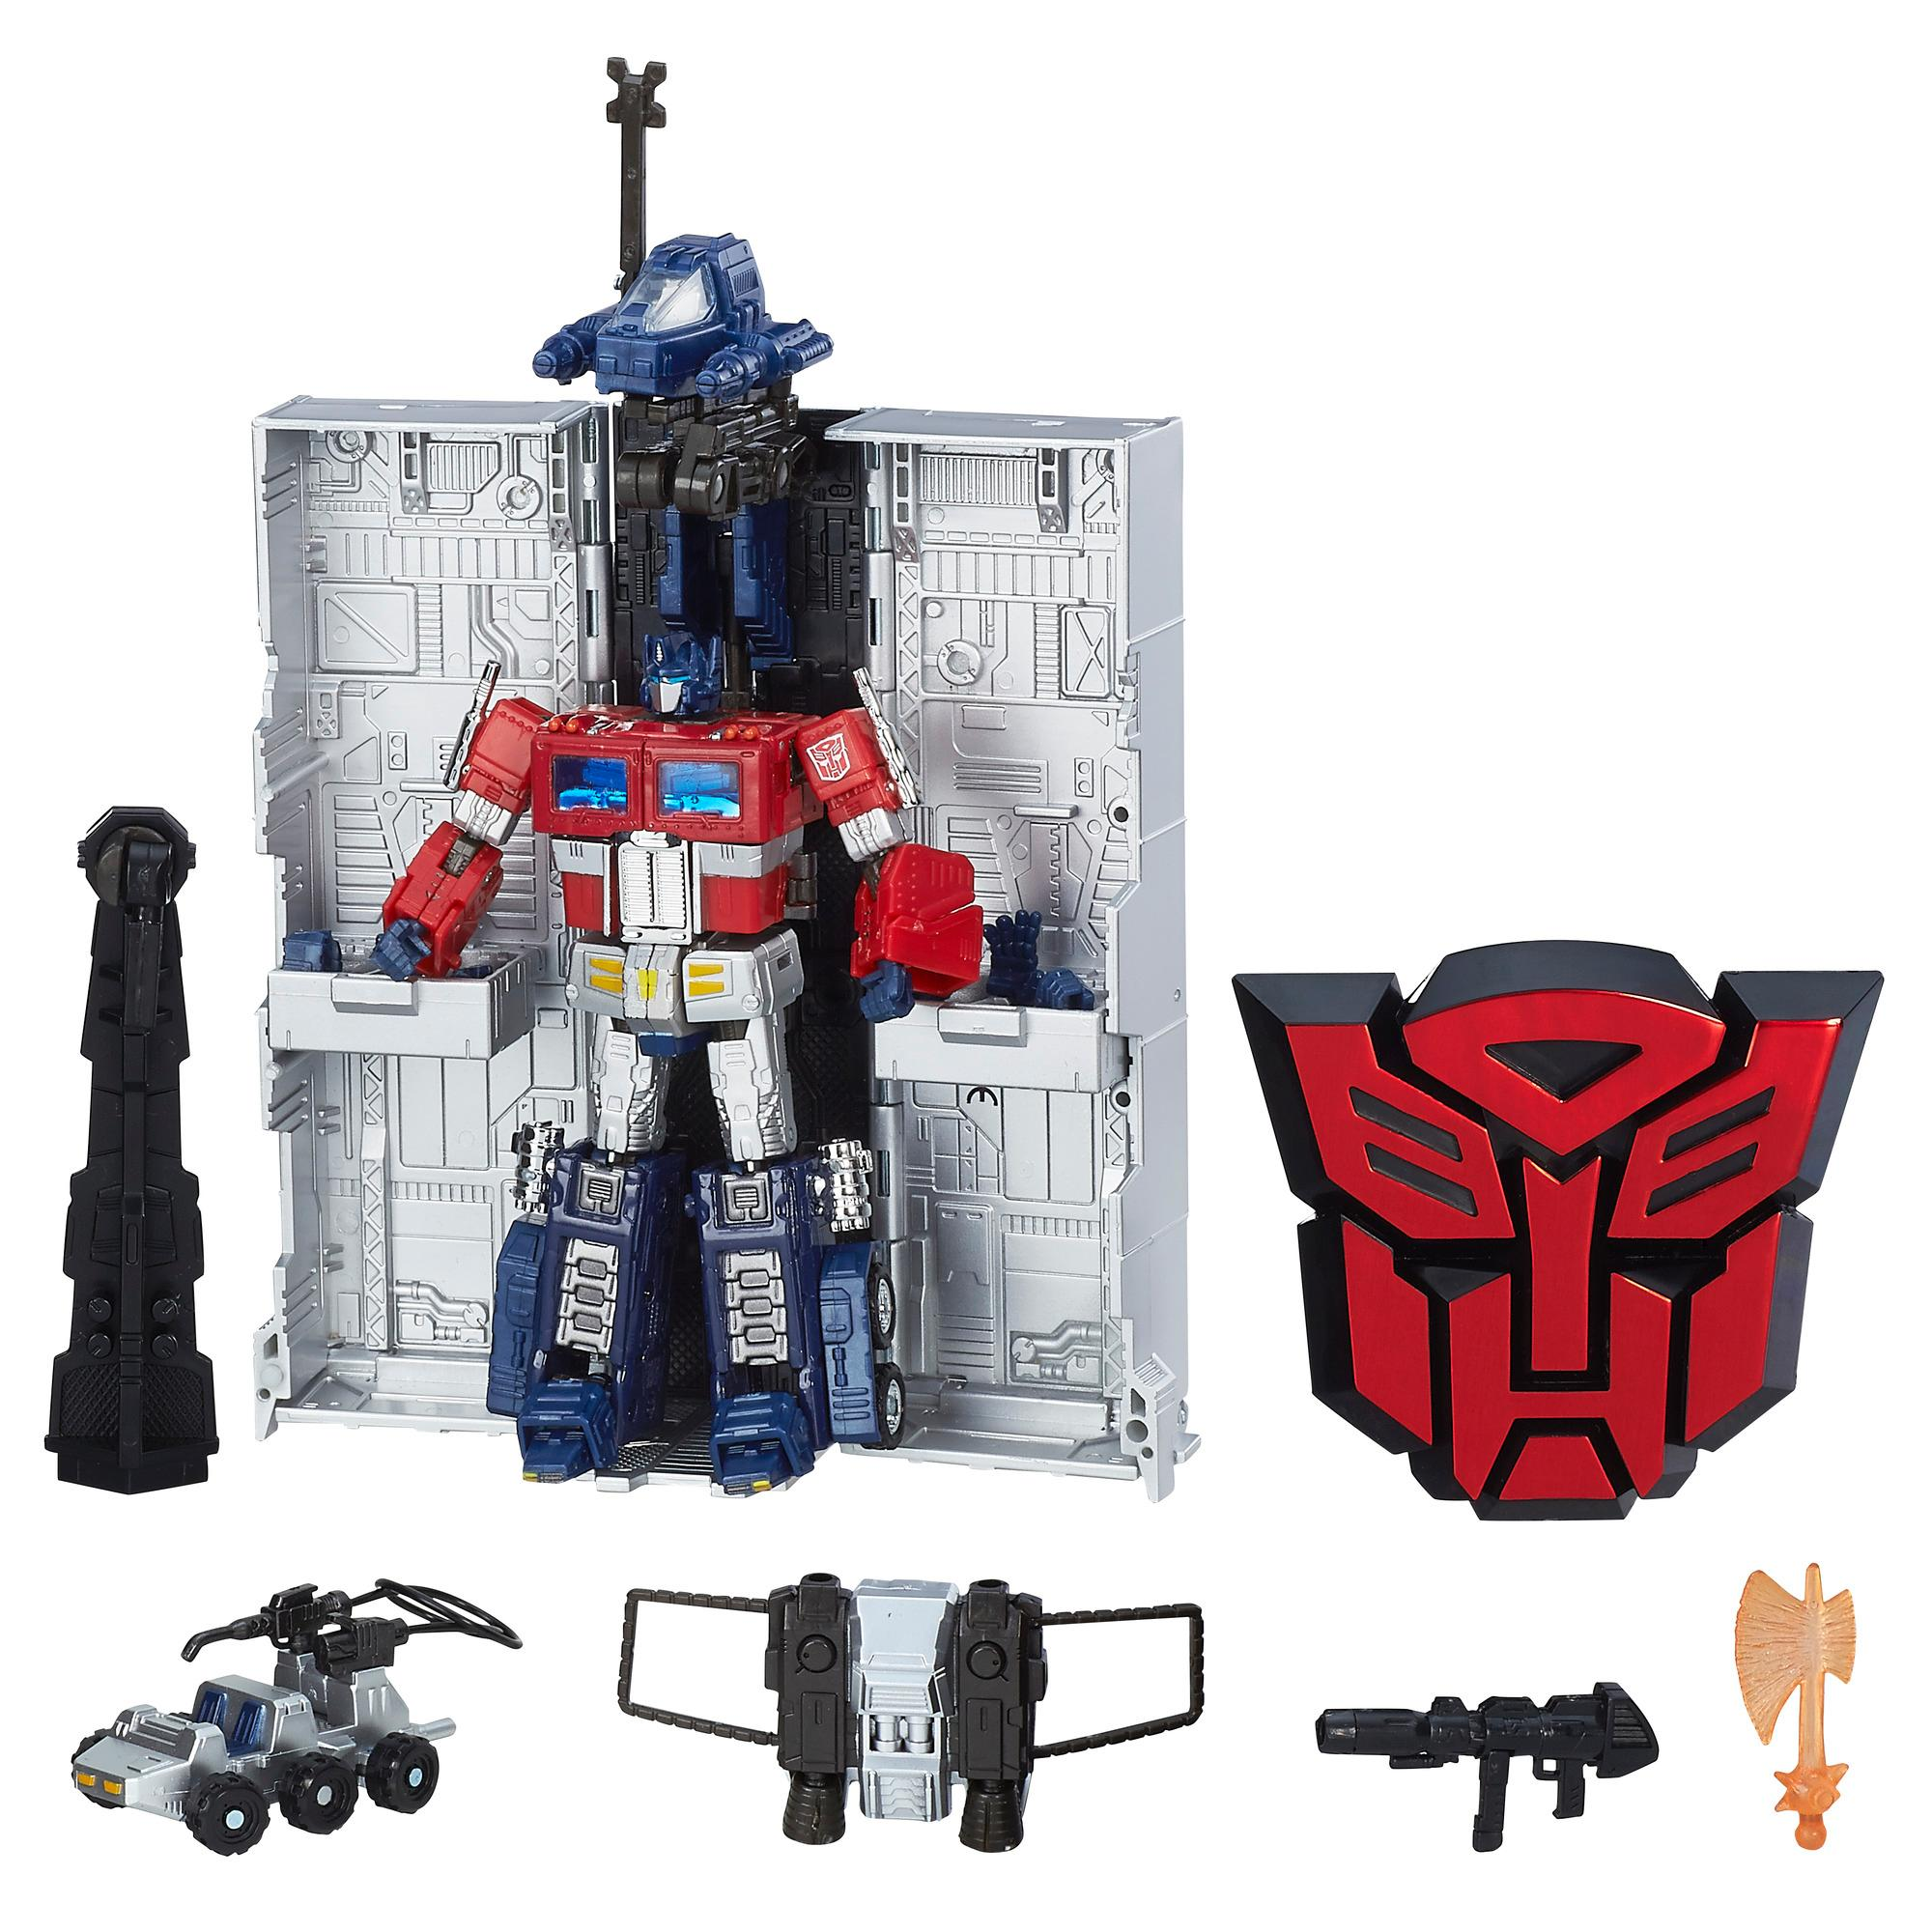 Transformers Generations Platinum Edition Optimus Prime Year of the Rooster